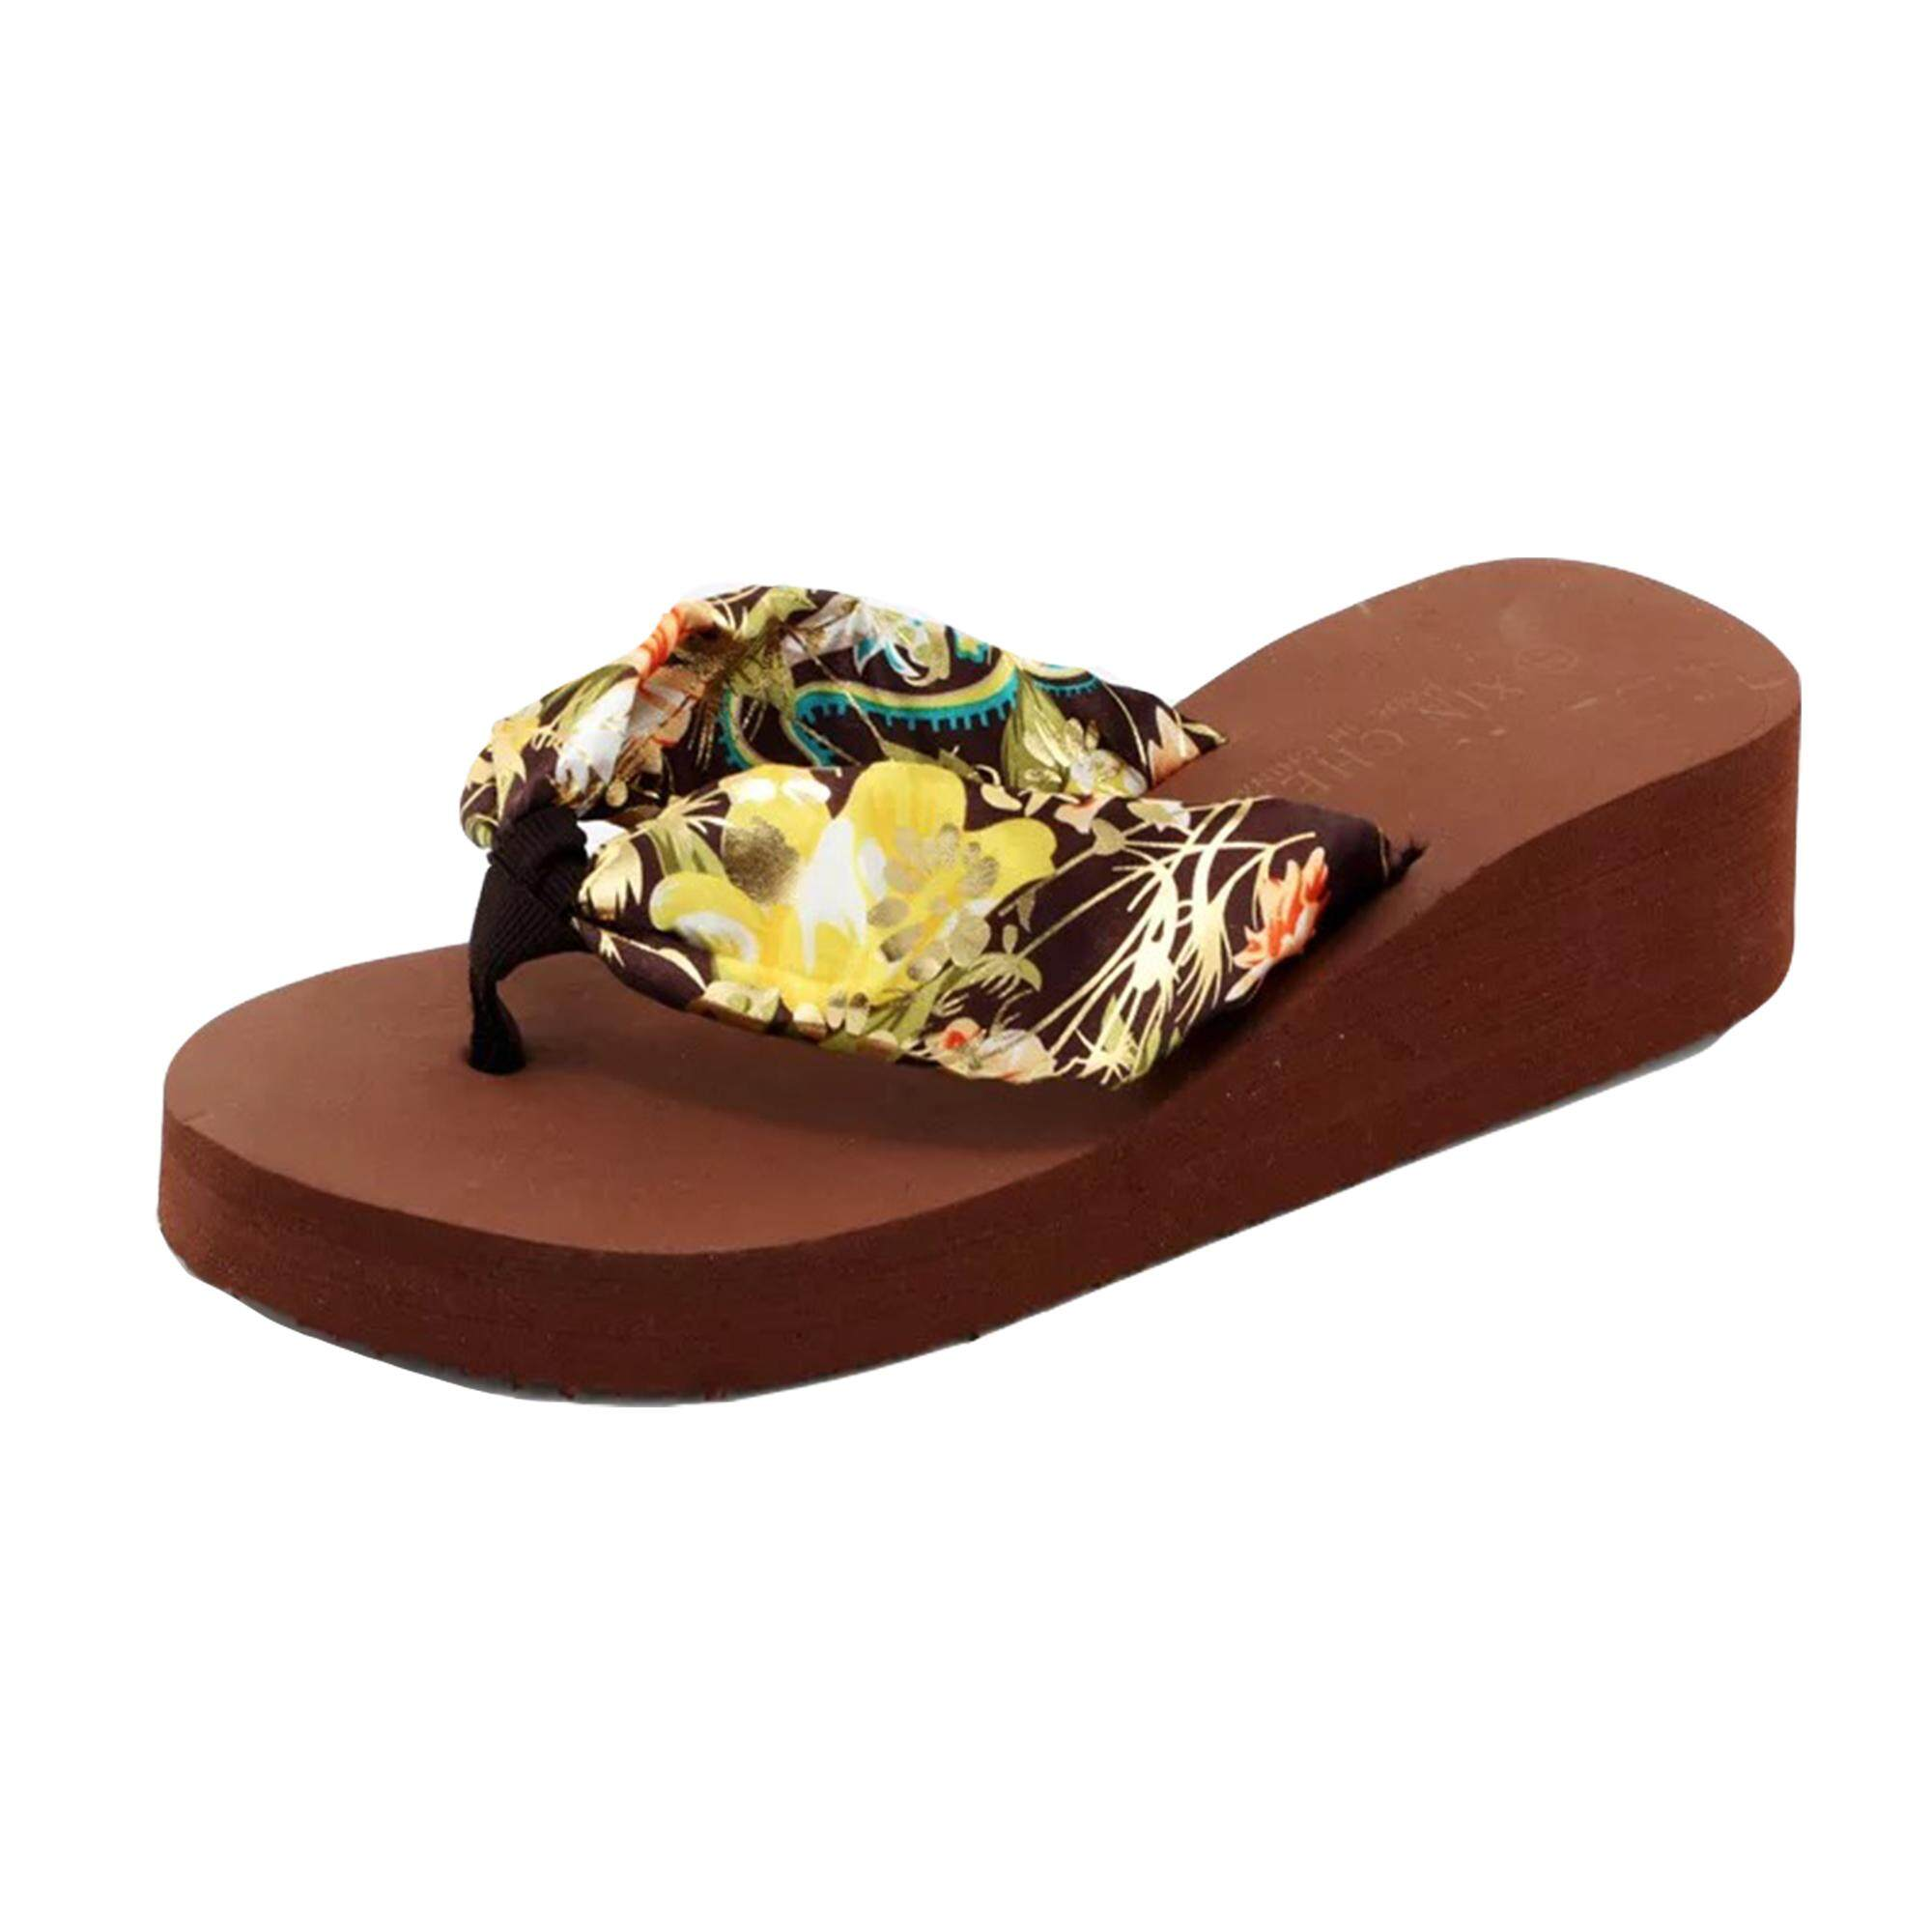 Buy Sandals for Women Online at Best Prices in Malaysia  b6a98e11020b